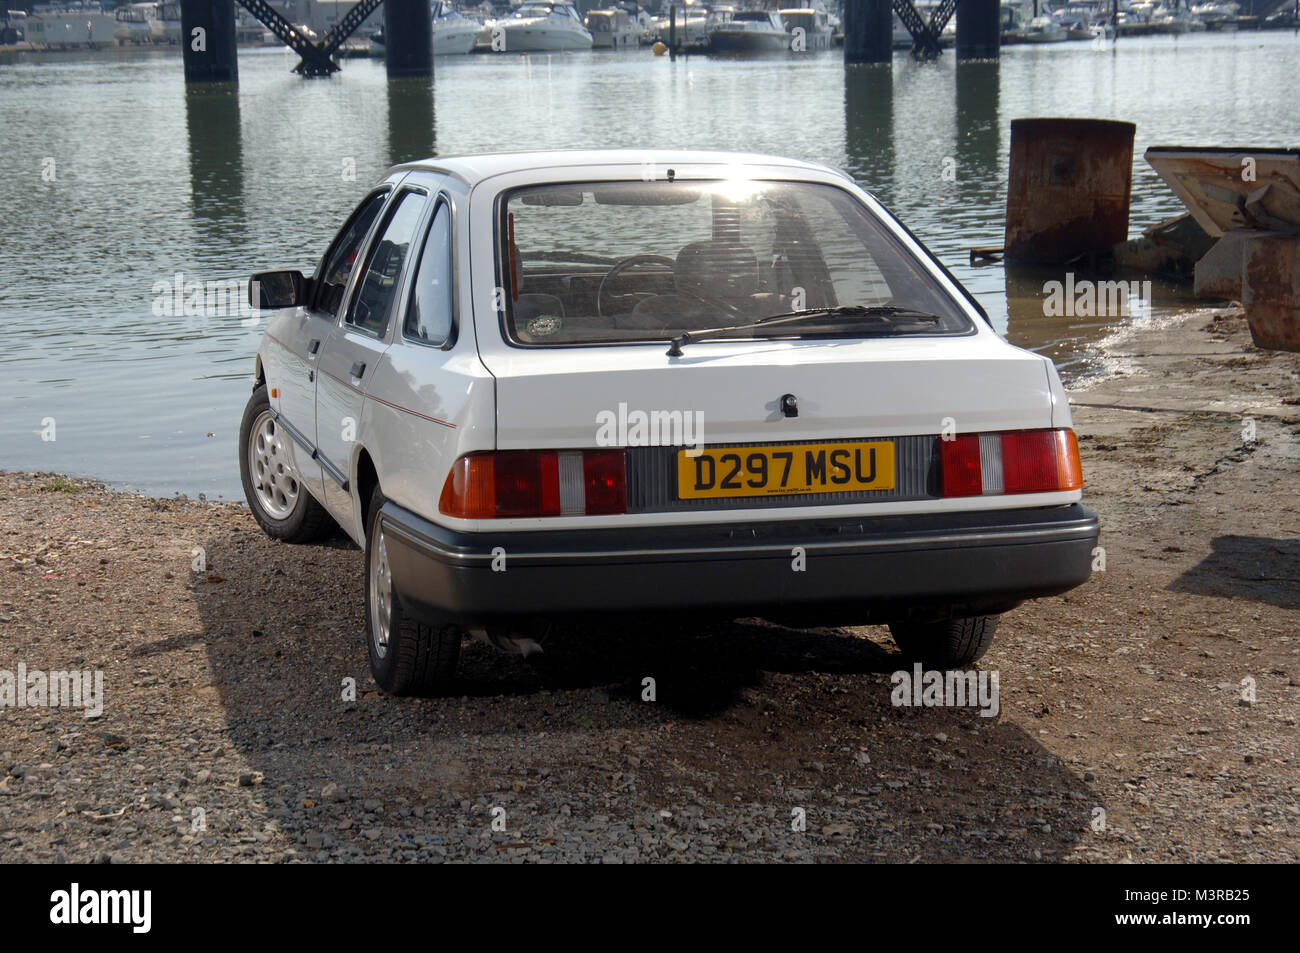 1986 Ford Sierra Hatchback Family Car And Common Rep Mobile Of